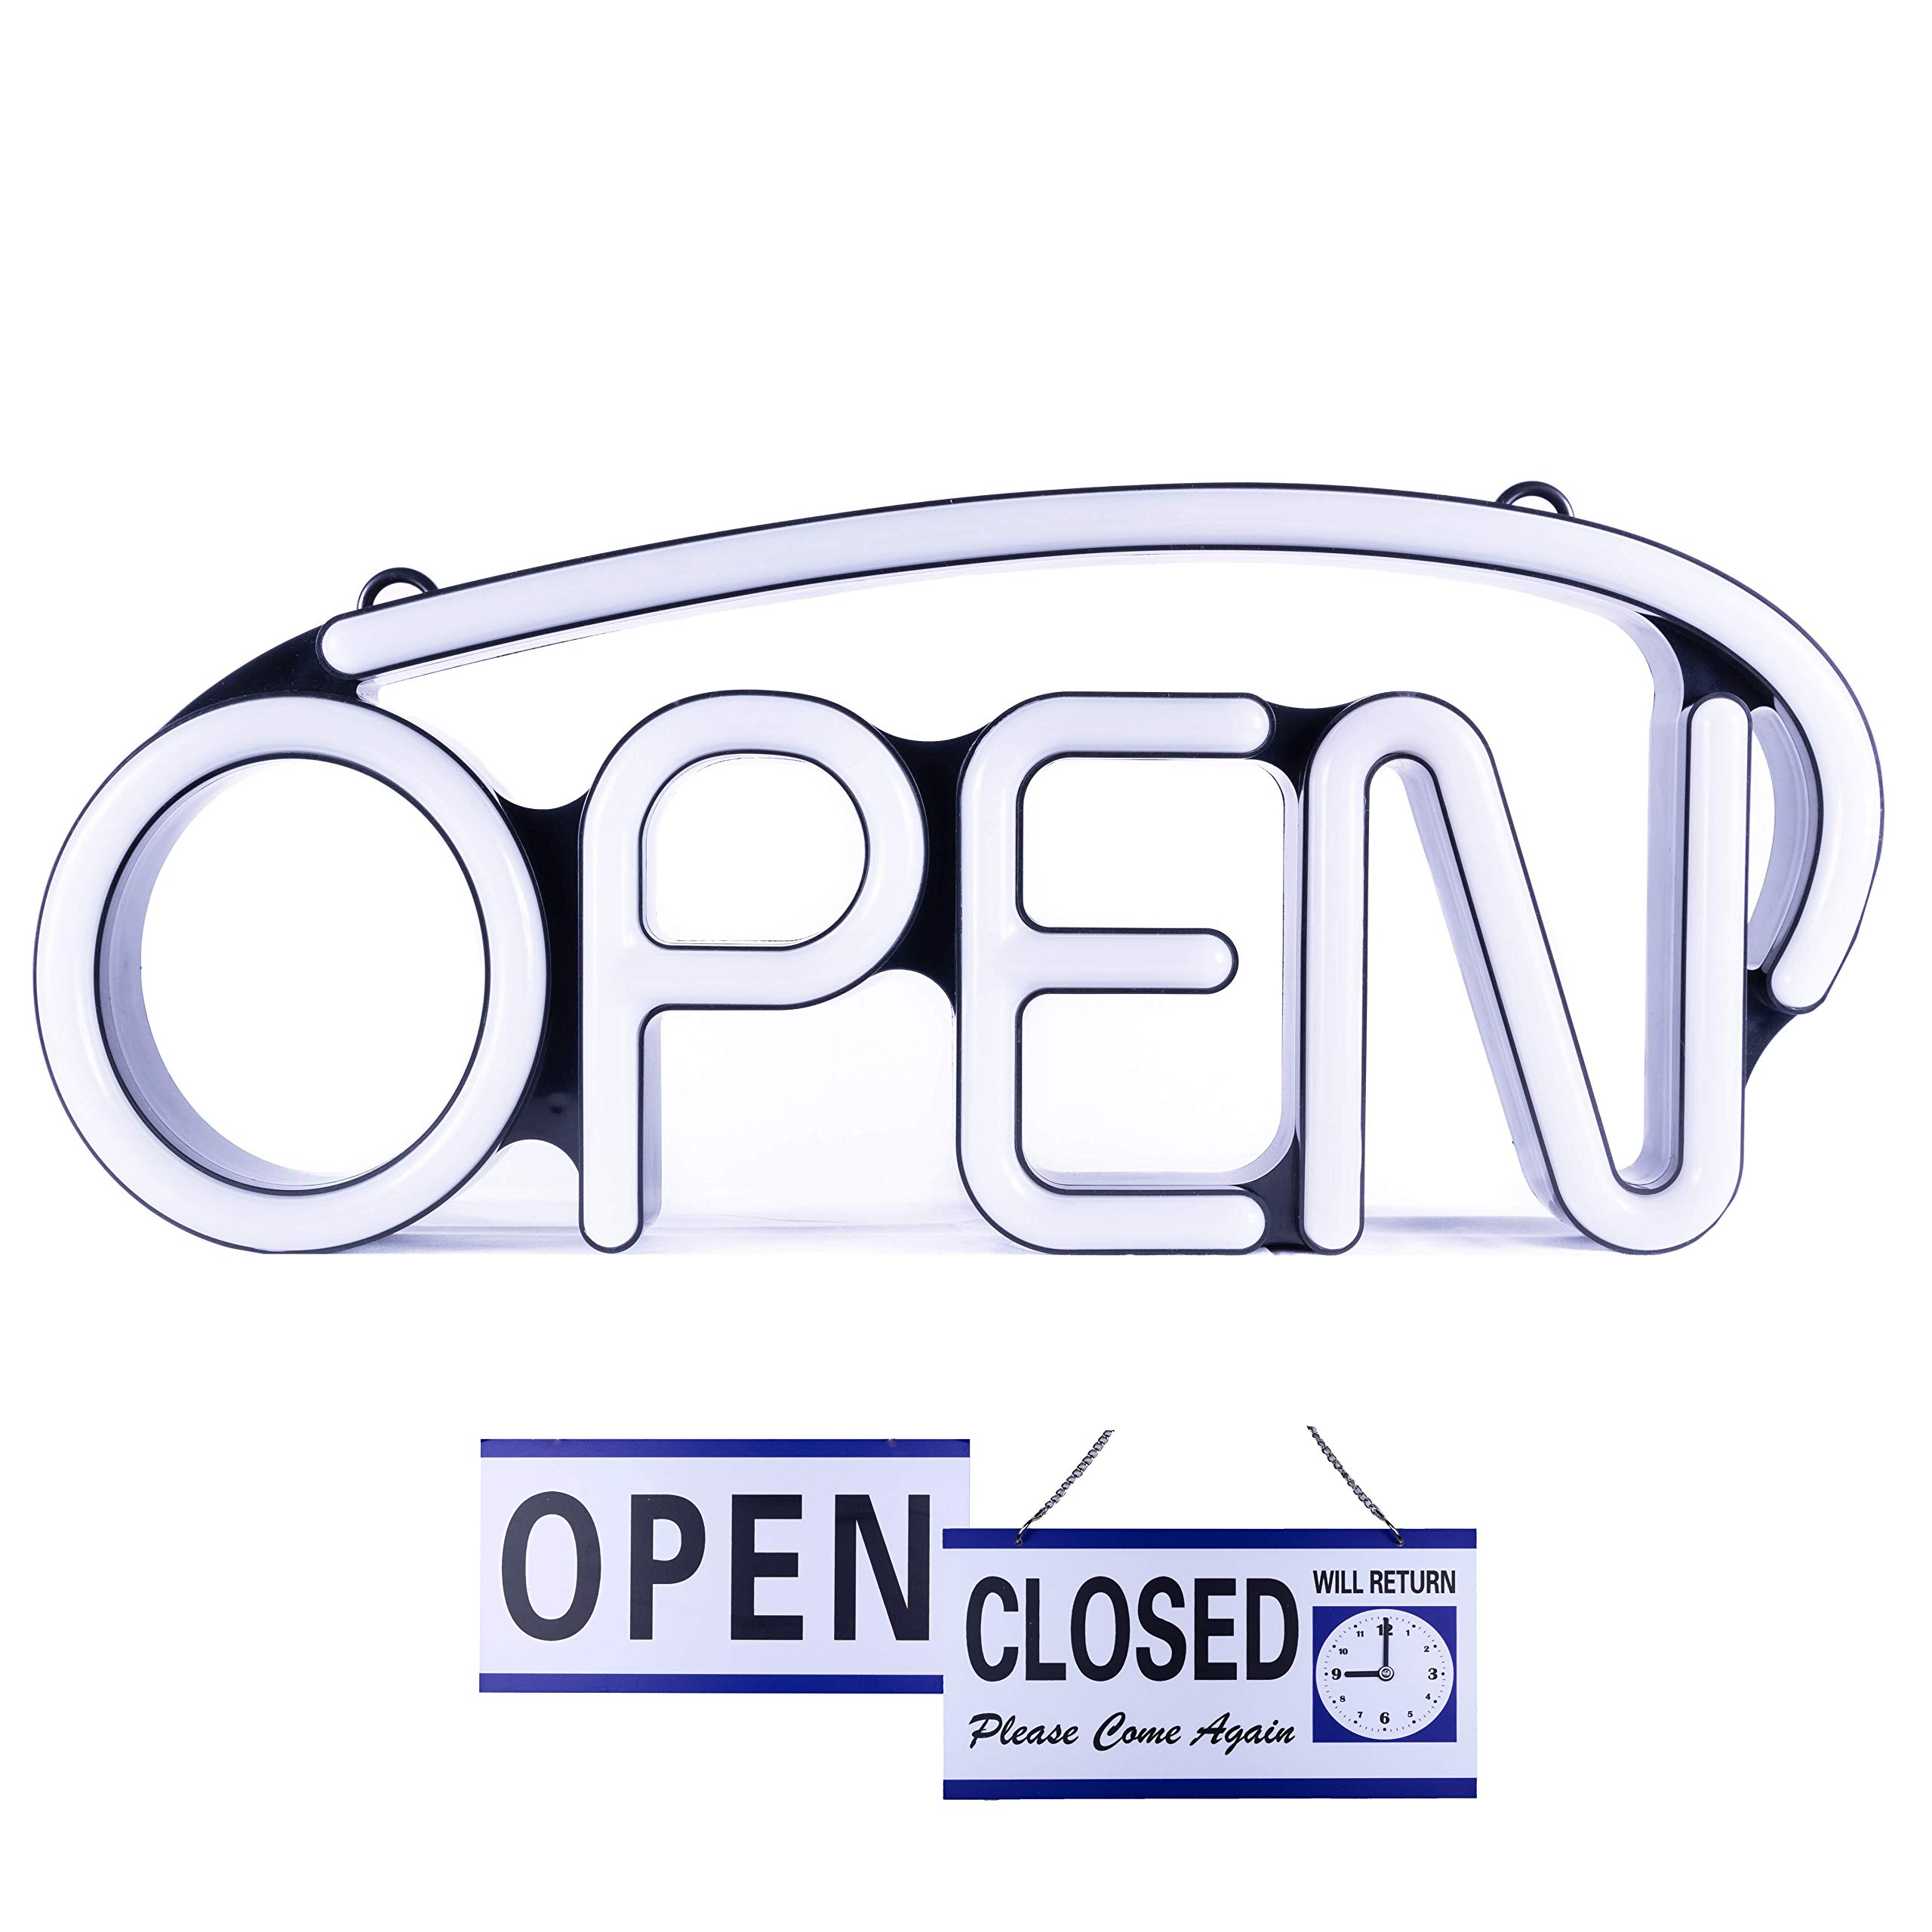 LED Neon Open Sign for Business - Bright White | Large for Business Displays 22.5'' x 9.5'' | Unique Modern Design | Five Steady and Flashing Modes | Includes Extra Will Return Open Closed Clock Sign